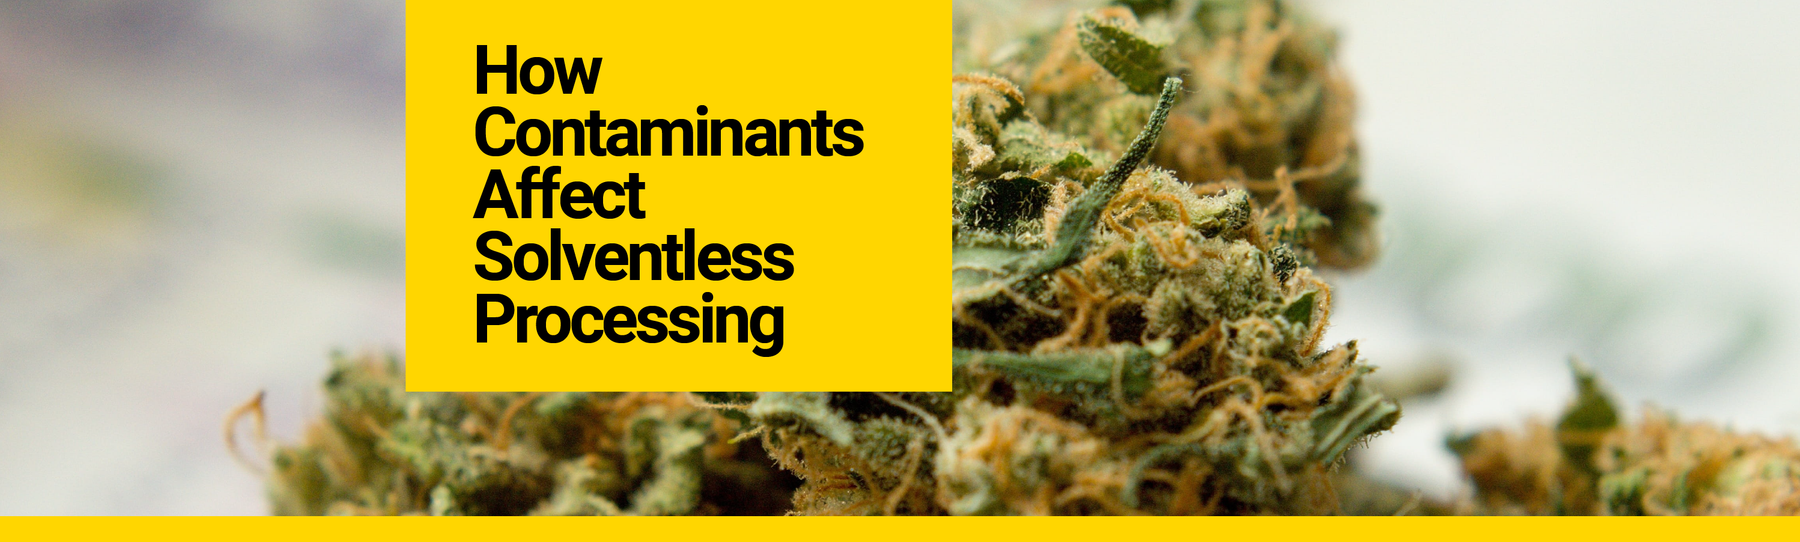 How Contaminants Affect Solventless Processing